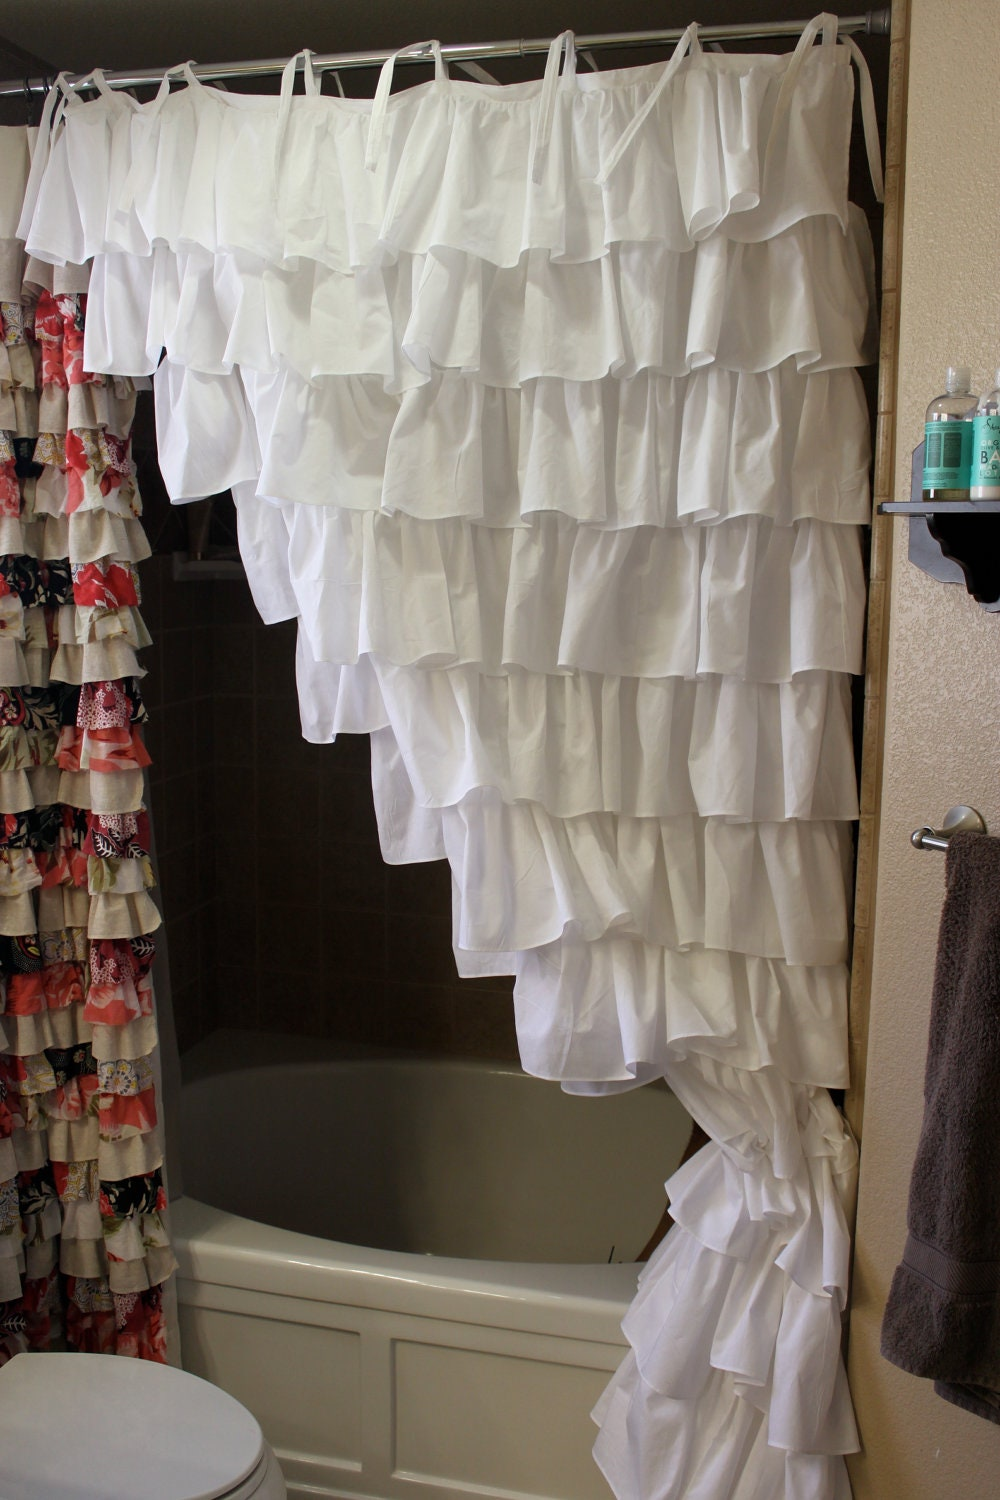 White Ruffled Shower Curtain Ruffled Curtains